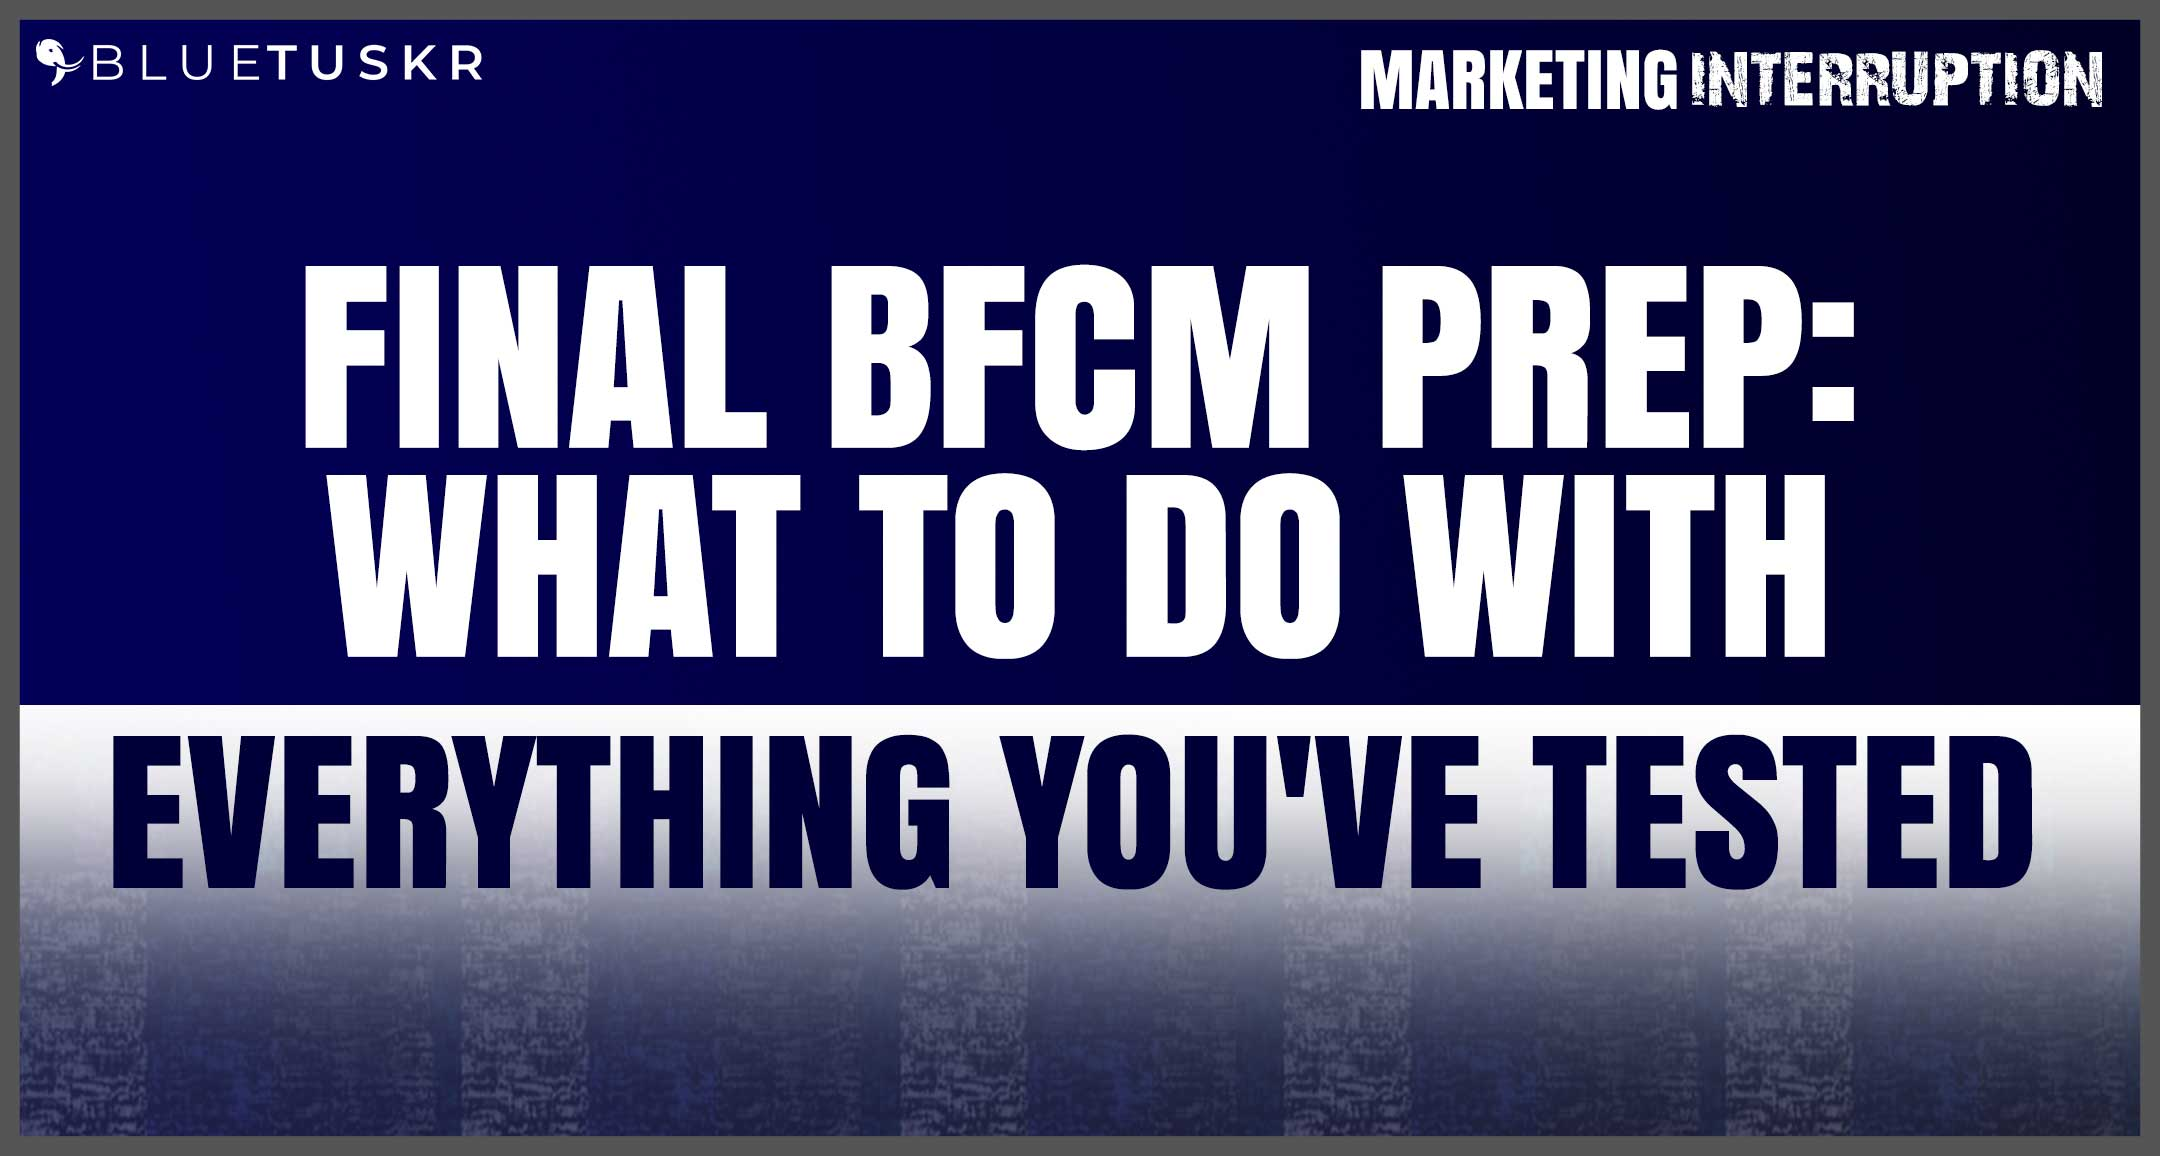 Final BFCM Prep: What To Do With Everything You've Tested